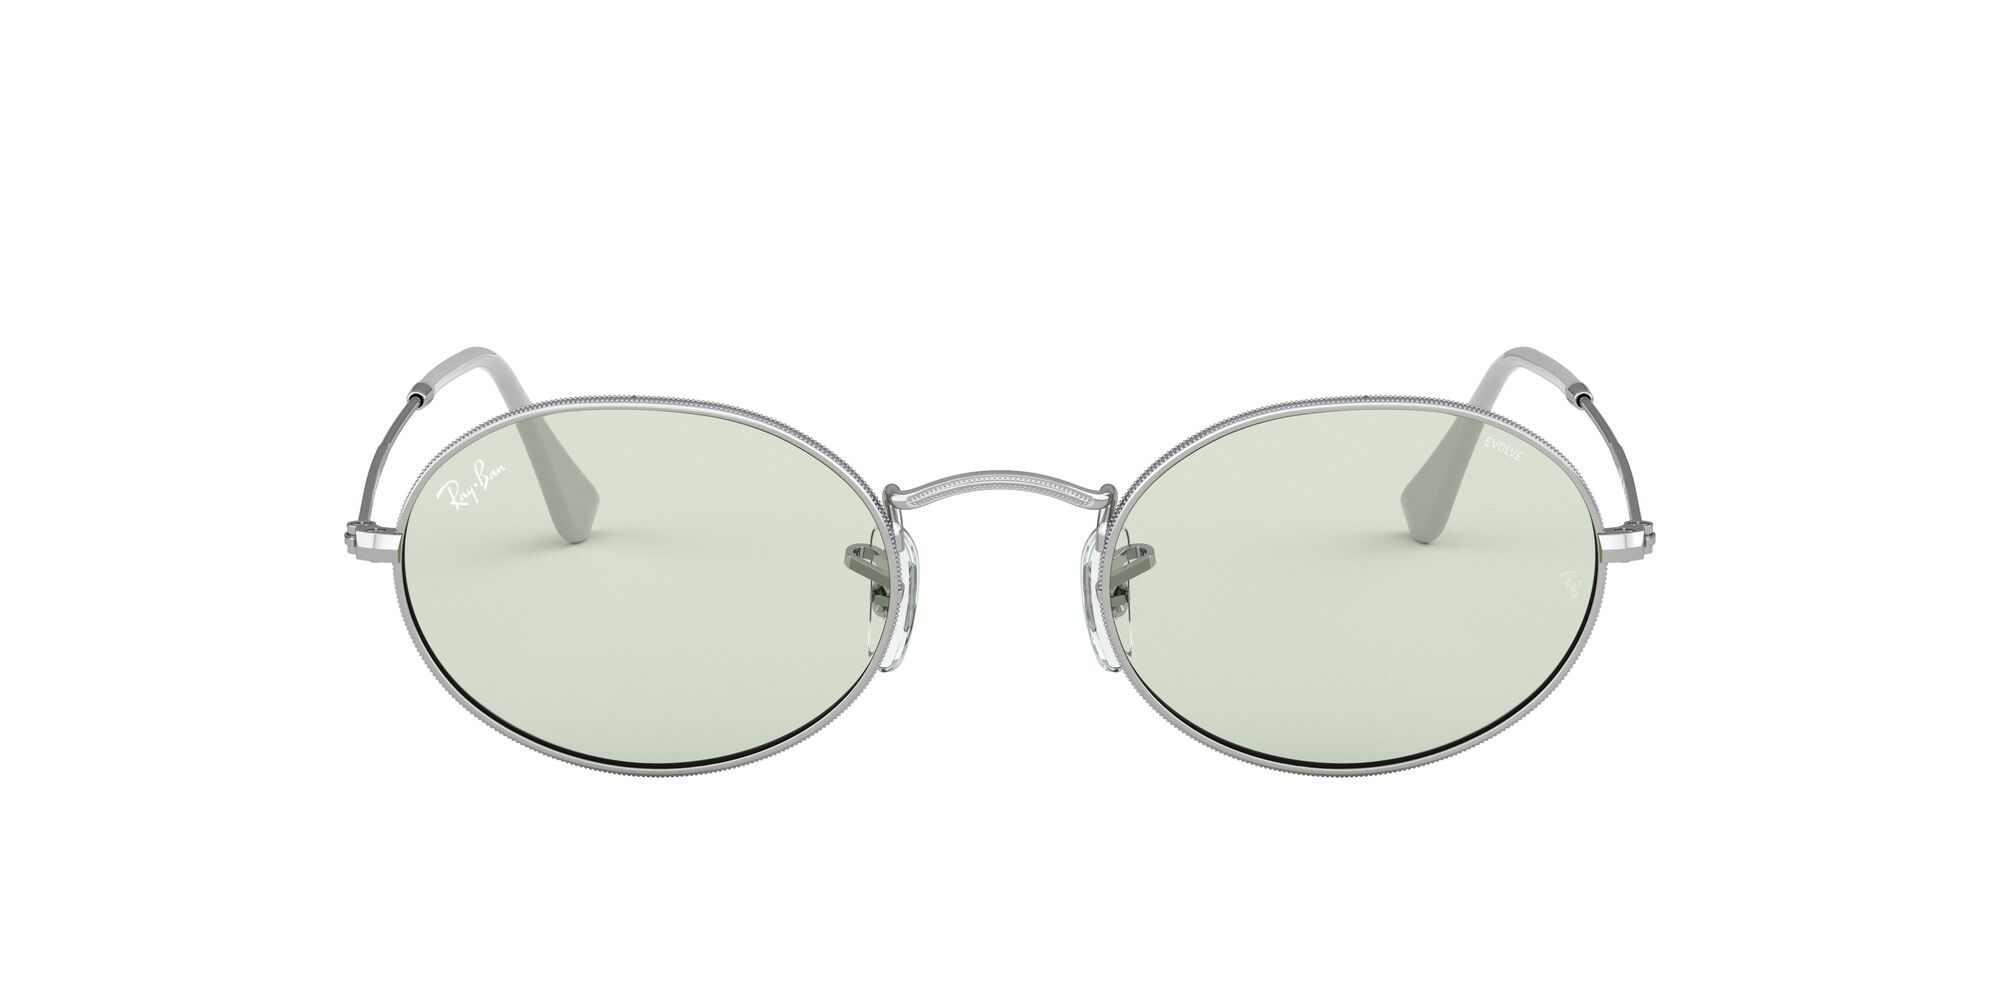 Front Ray-Ban Ray-Ban 0RB3547 003/T1 53/21 Zilver/Groen